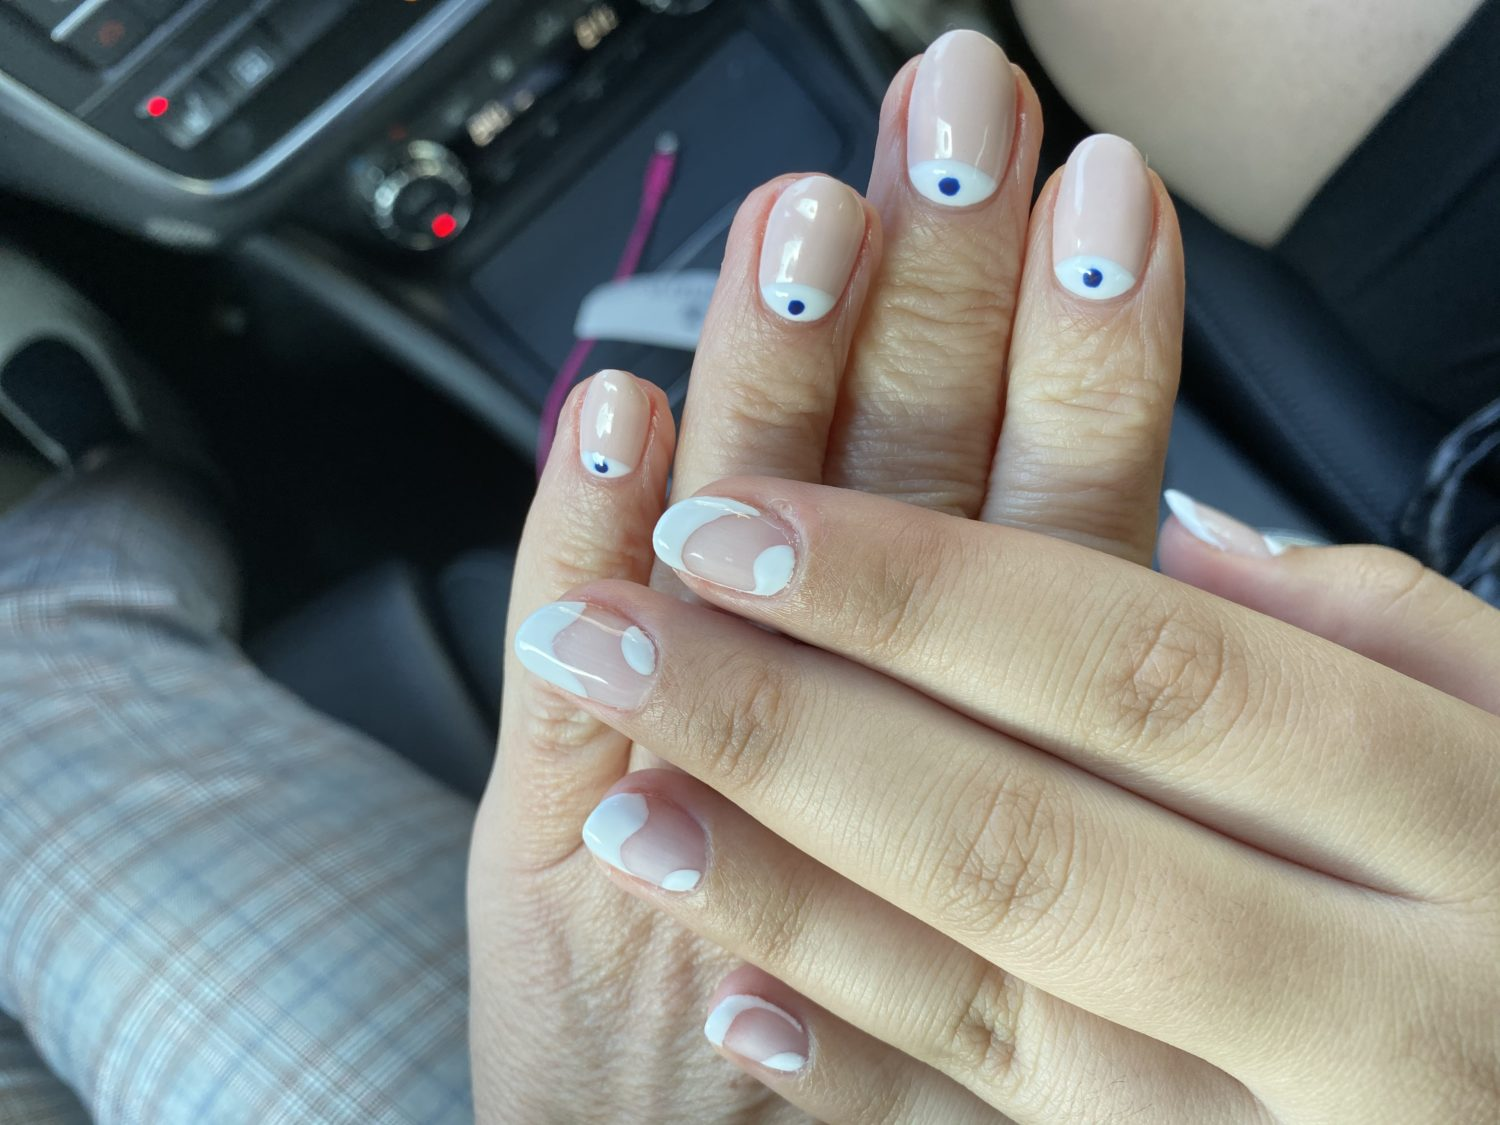 Cool Nail Art Designs That We Can't Get Enough Of!